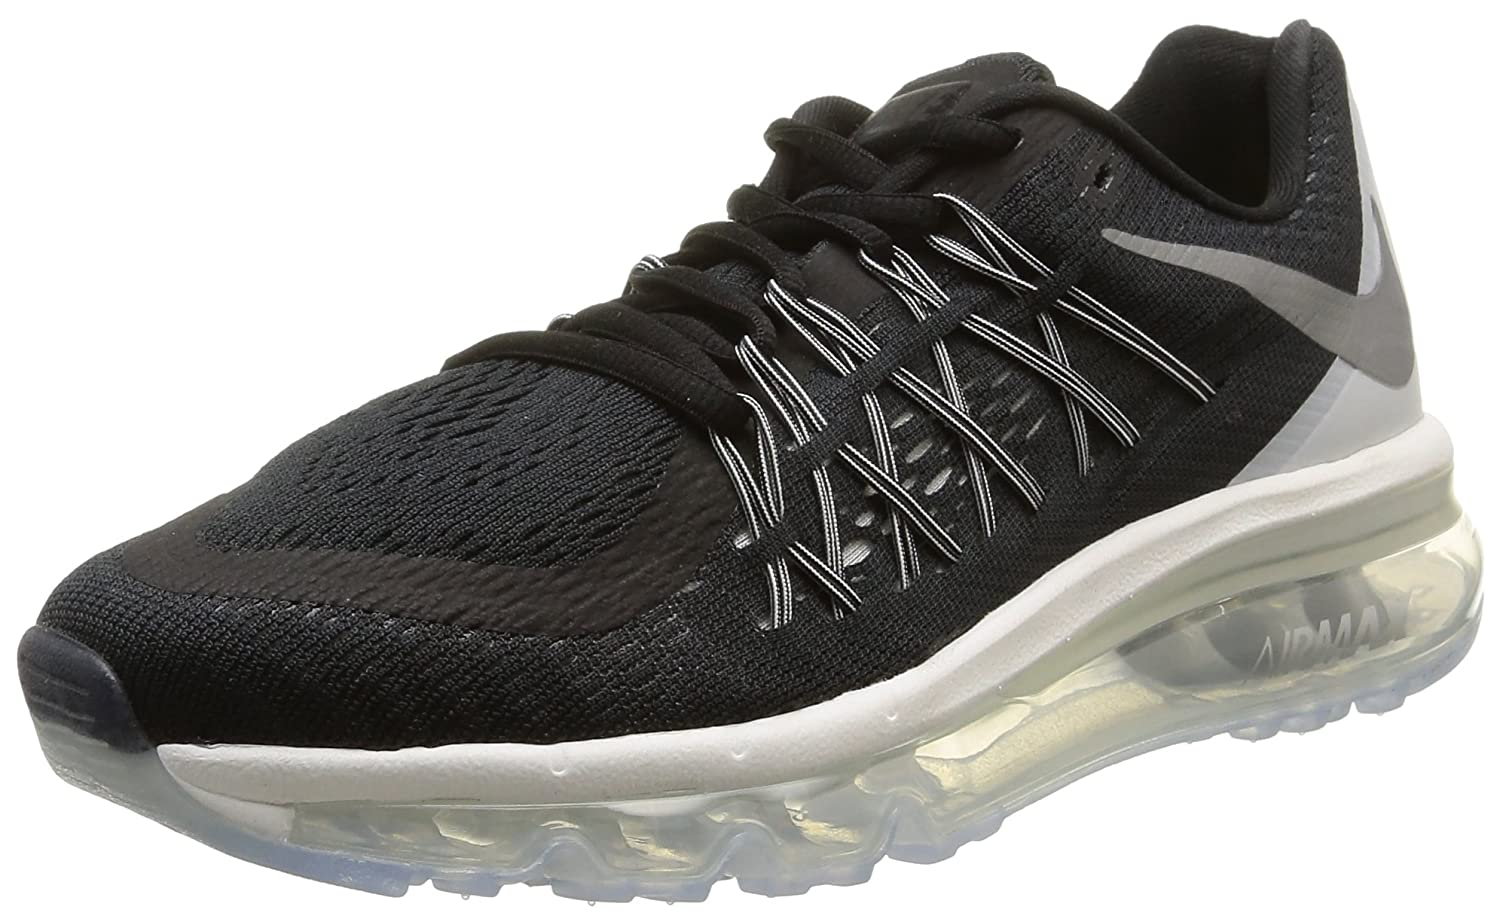 570af79e76 Amazon.com | Nike Womens Air Max 2015 Low Top Lace Up Running Sneaker |  Running